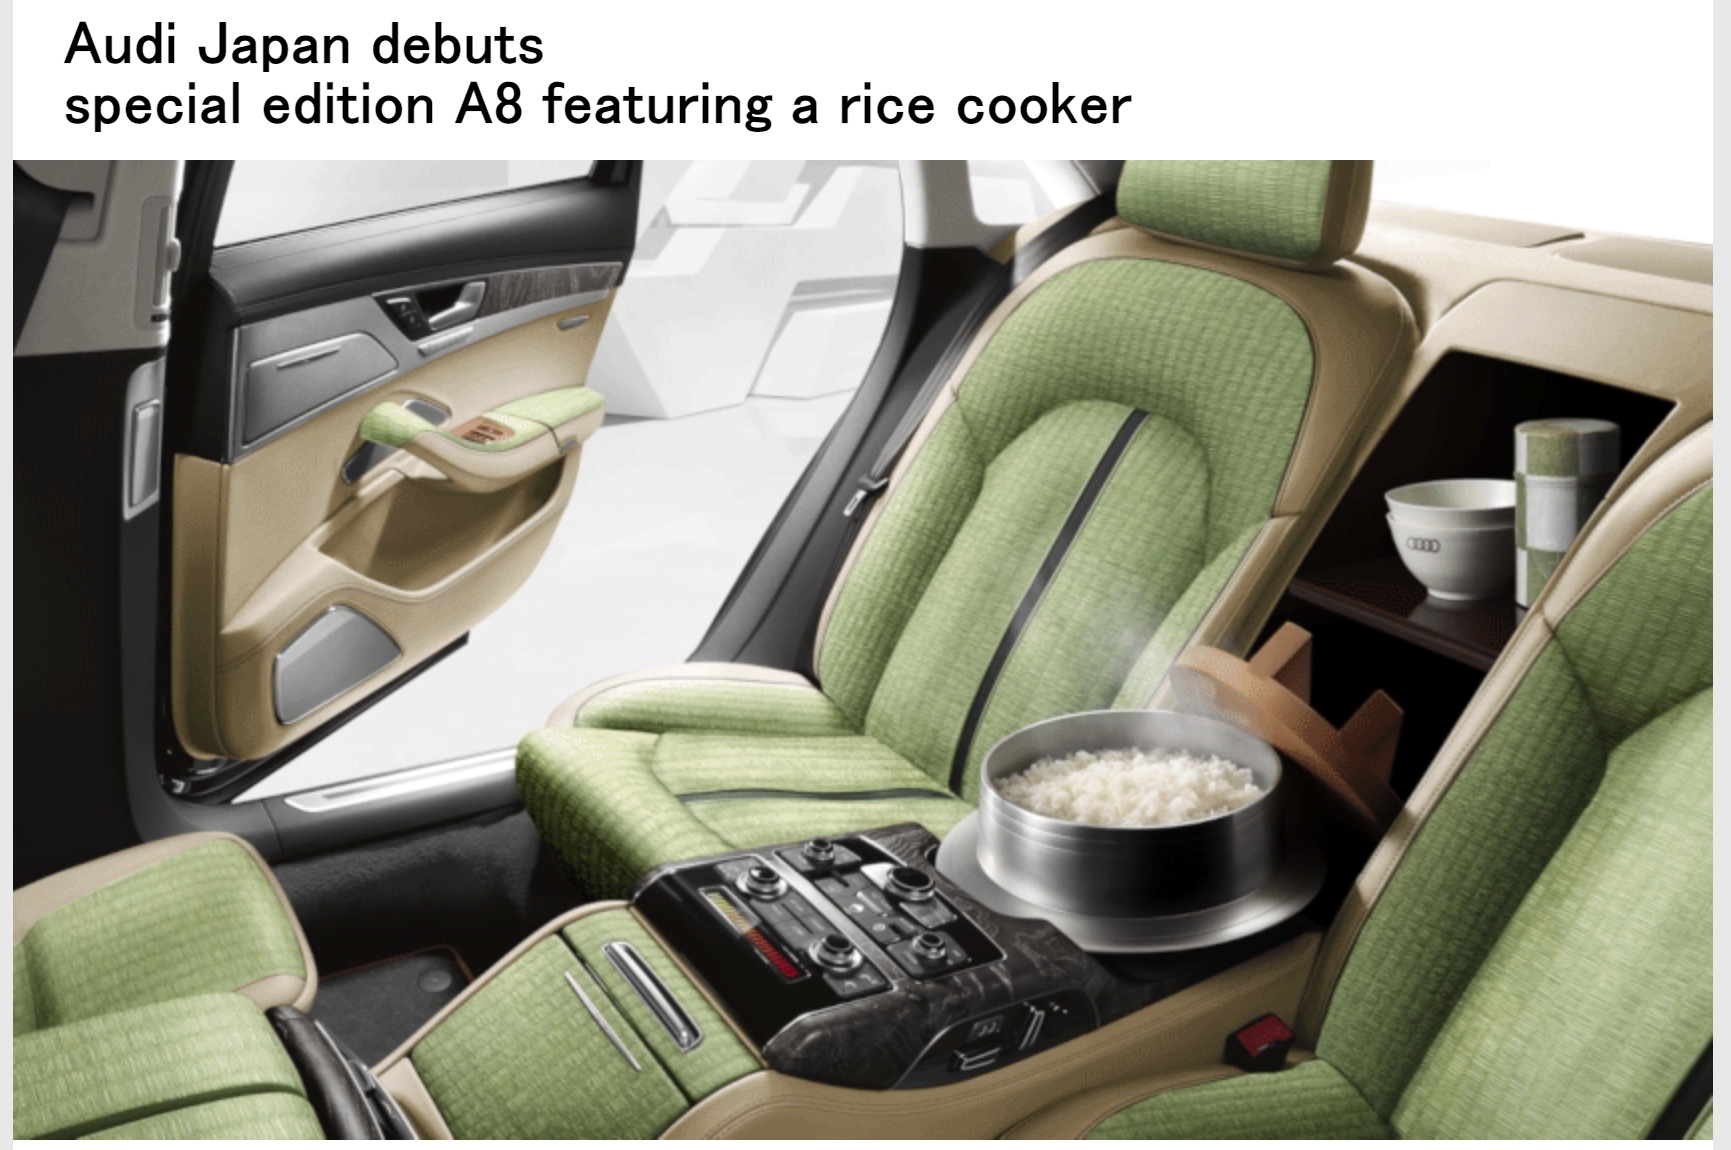 Audi Japan April Fool's ad for rice cooker